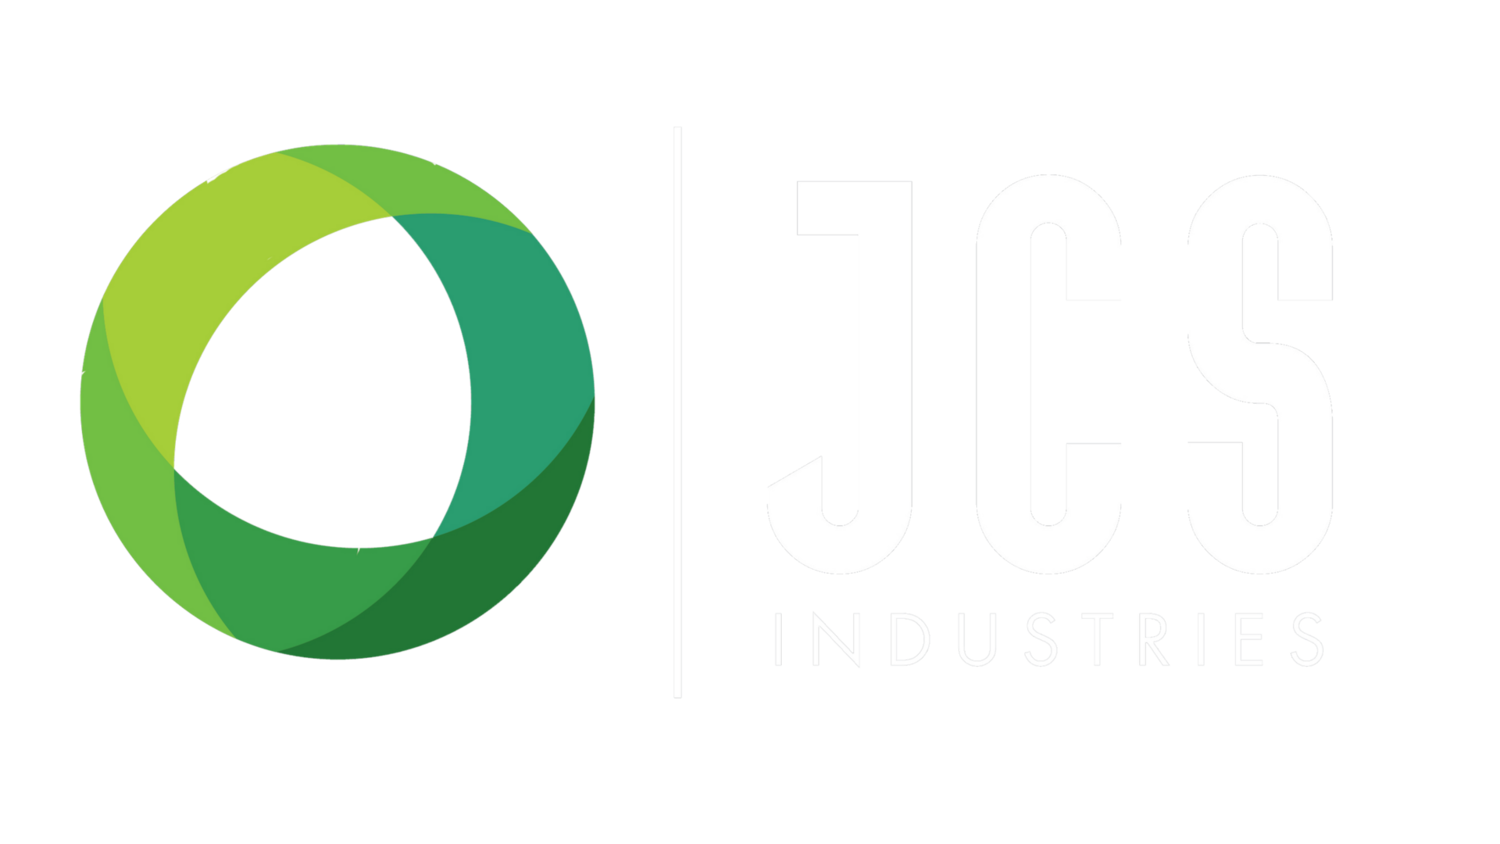 JCS Industries